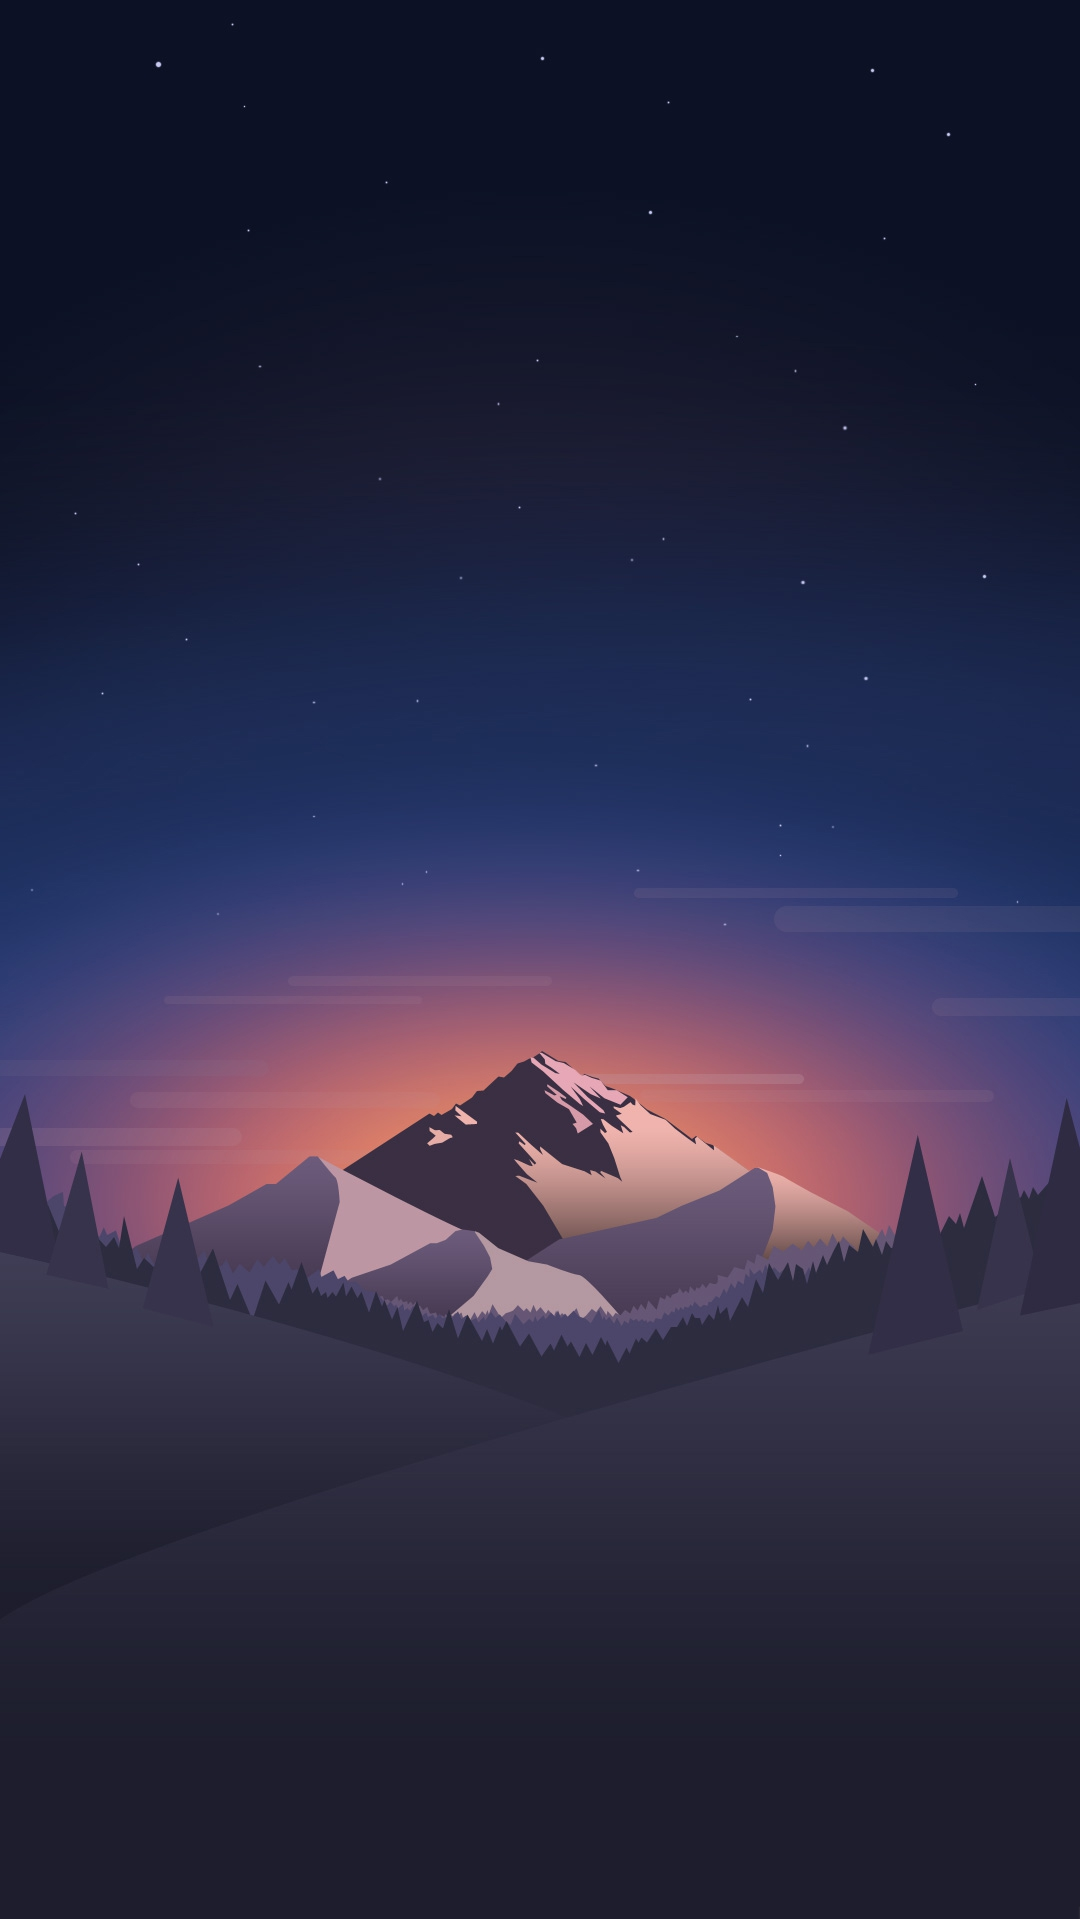 Digital-Minimal-Mountains-Forest-Night-iPhone-Wallpaper ...